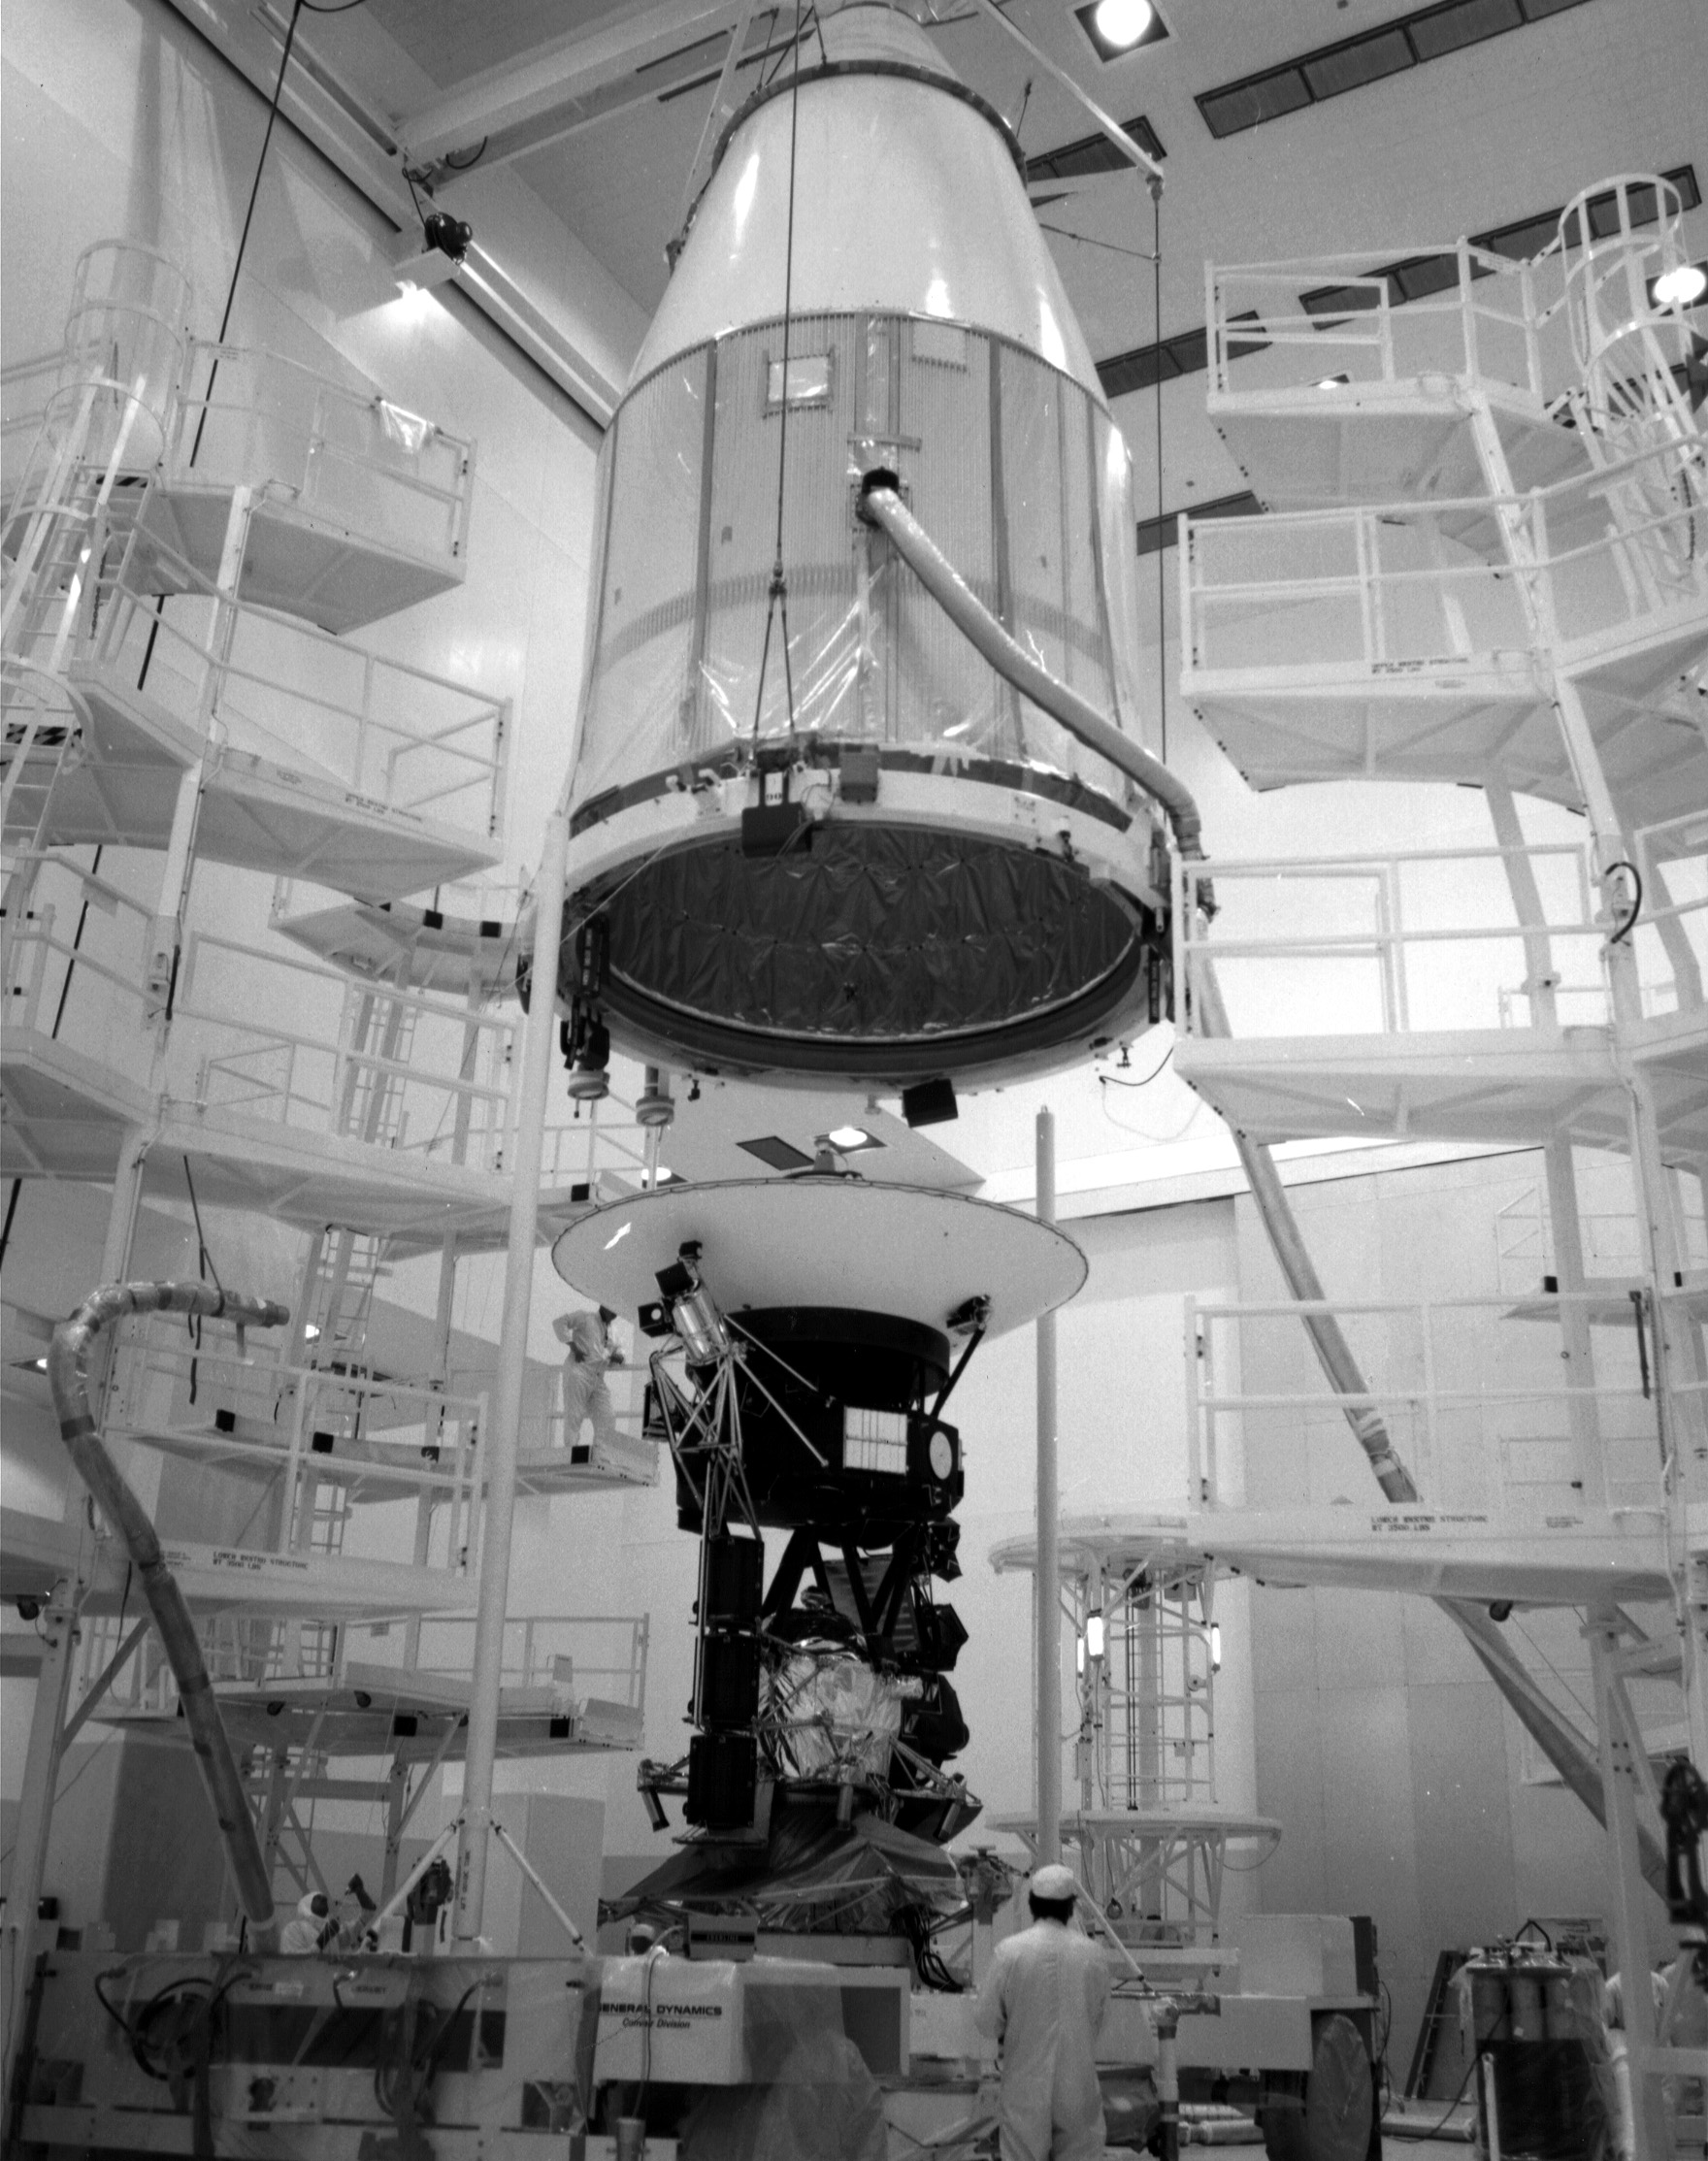 File:Voyager 2 is encapsulated.jpg - Wikimedia Commons